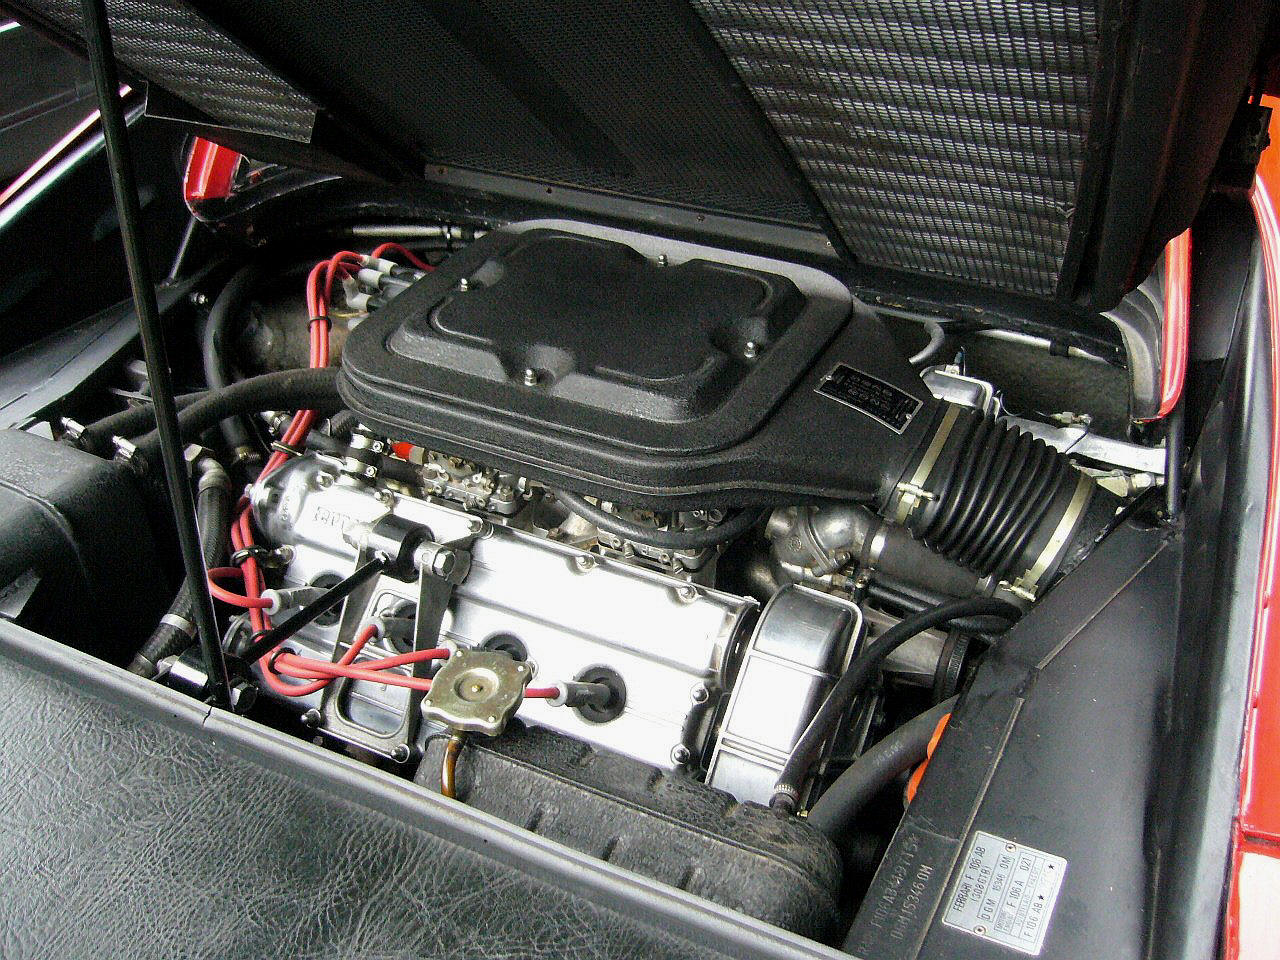 FERRARI 308 engine